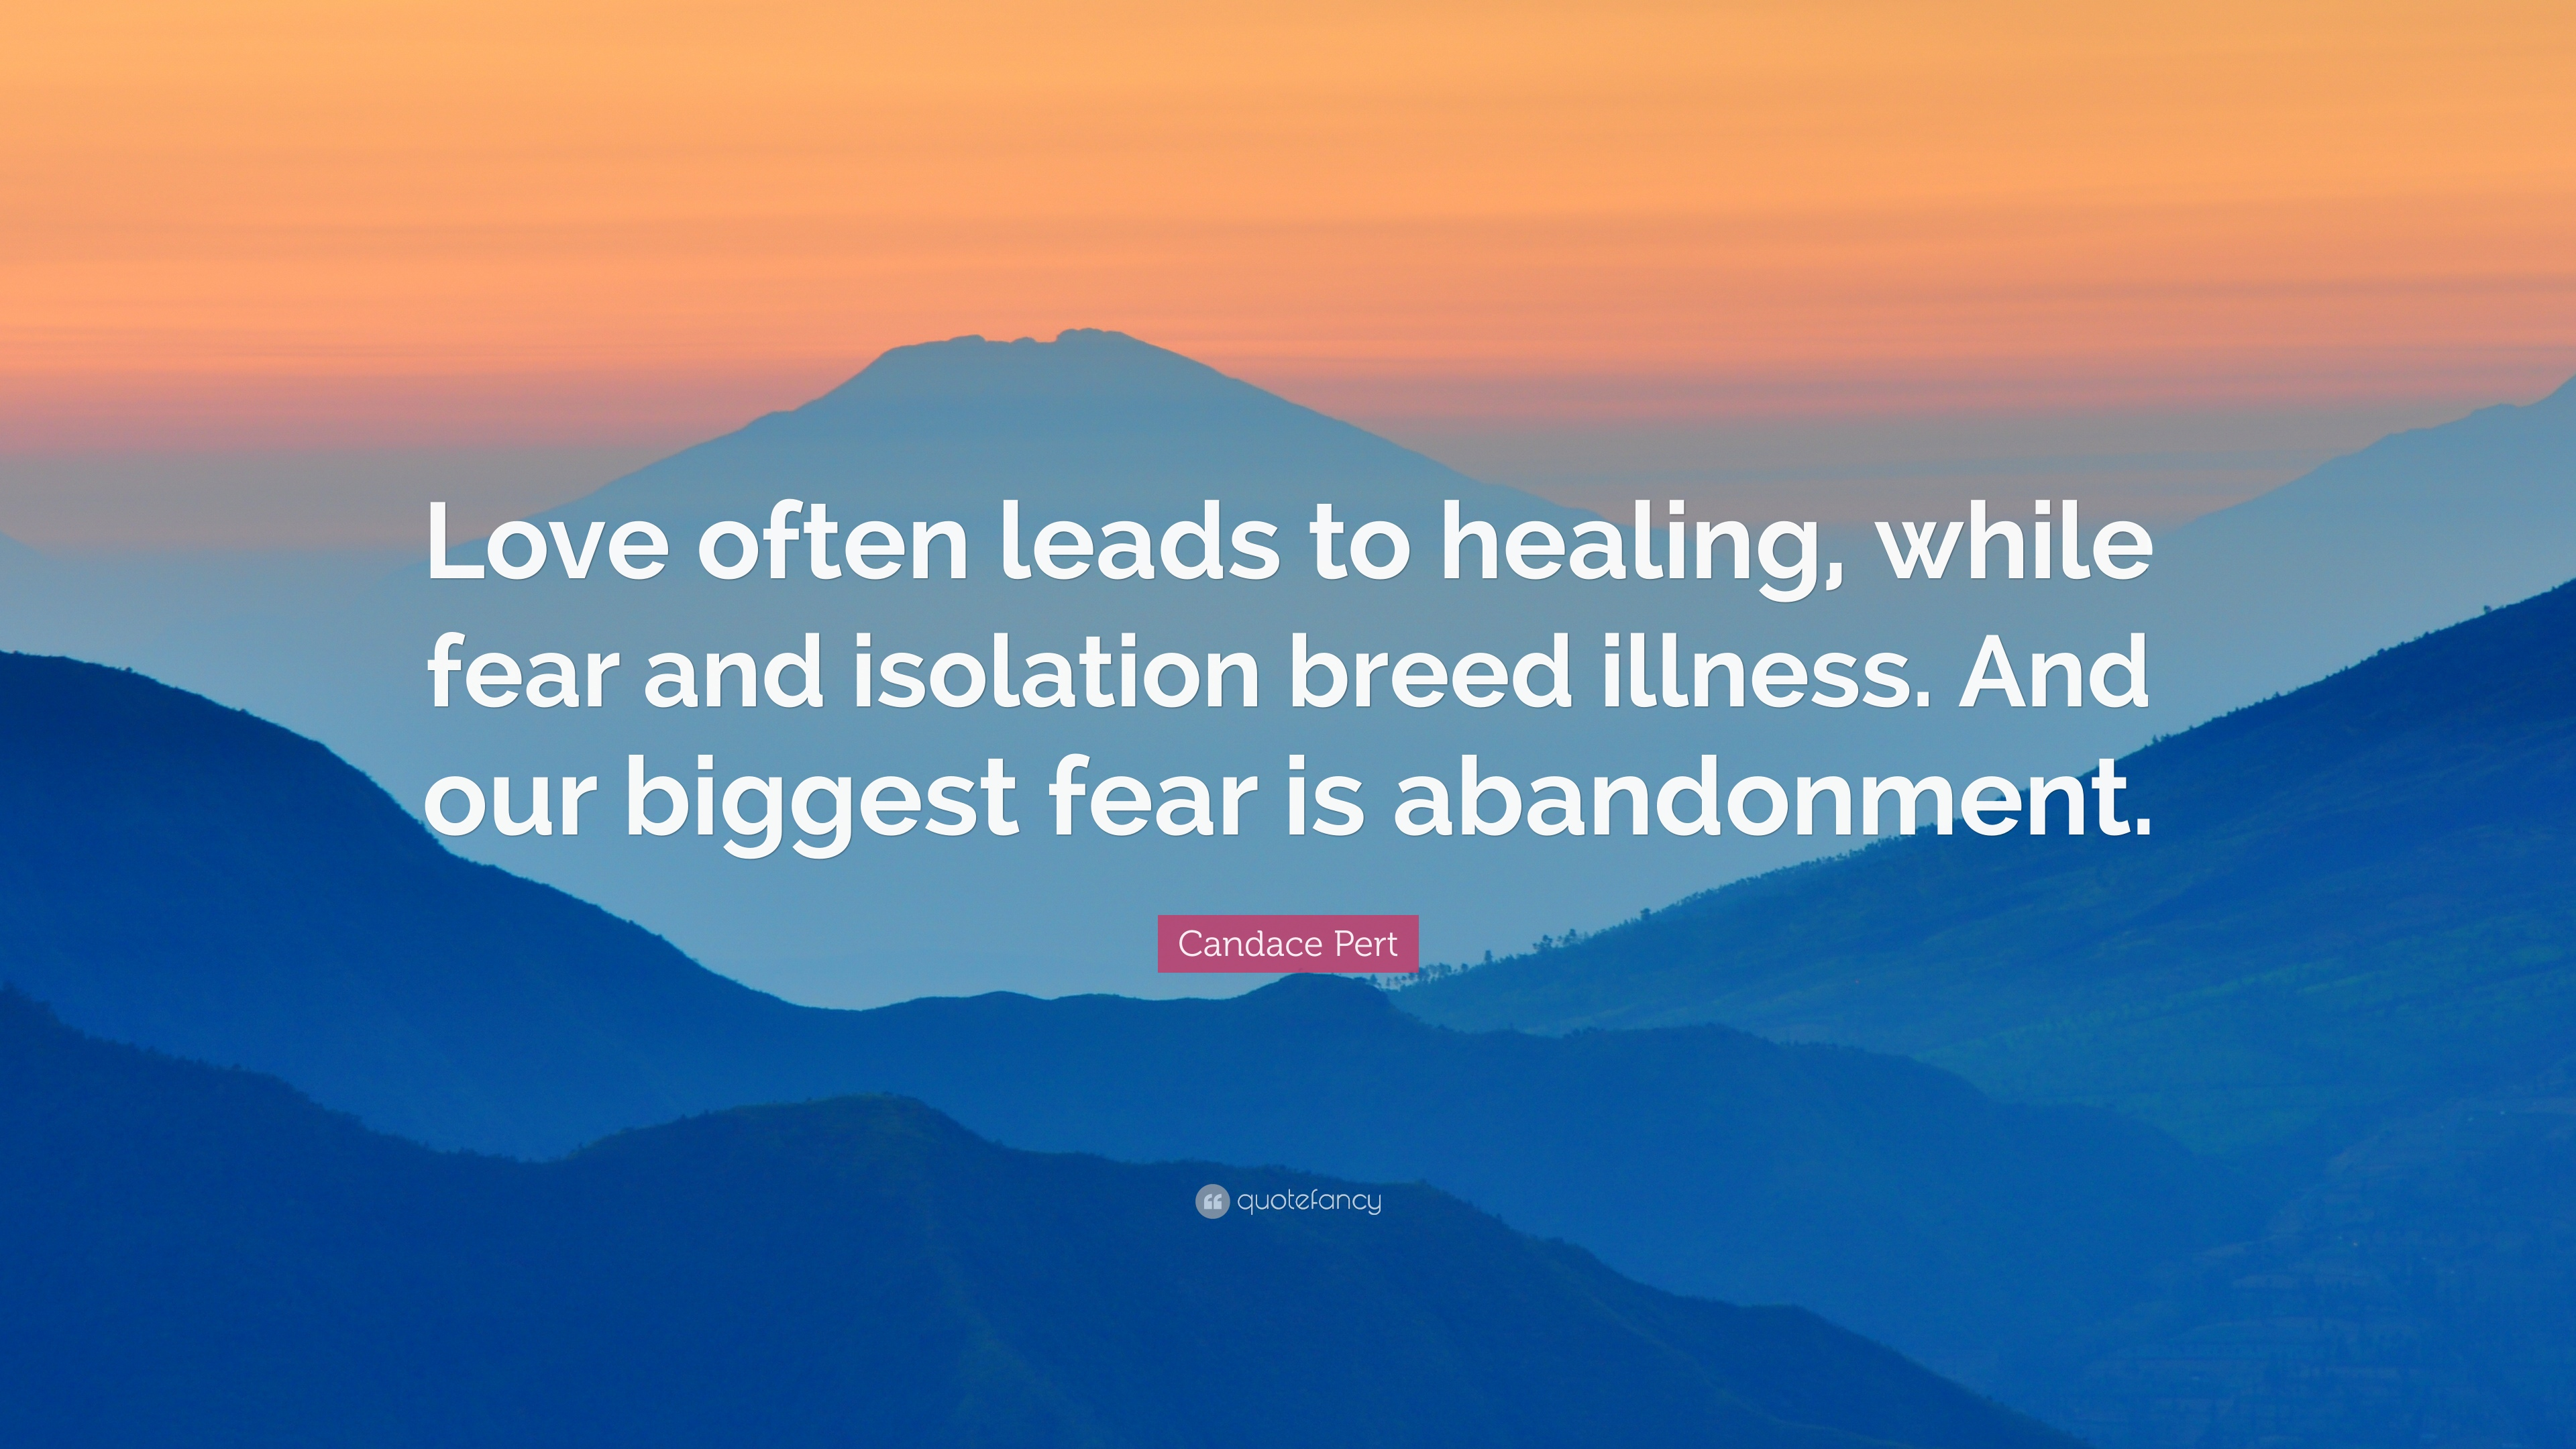 Candace Pert Quote Love Often Leads To Healing While Fear And Isolation Breed Illness And Our Biggest Fear Is Abandonment 7 Wallpapers Quotefancy